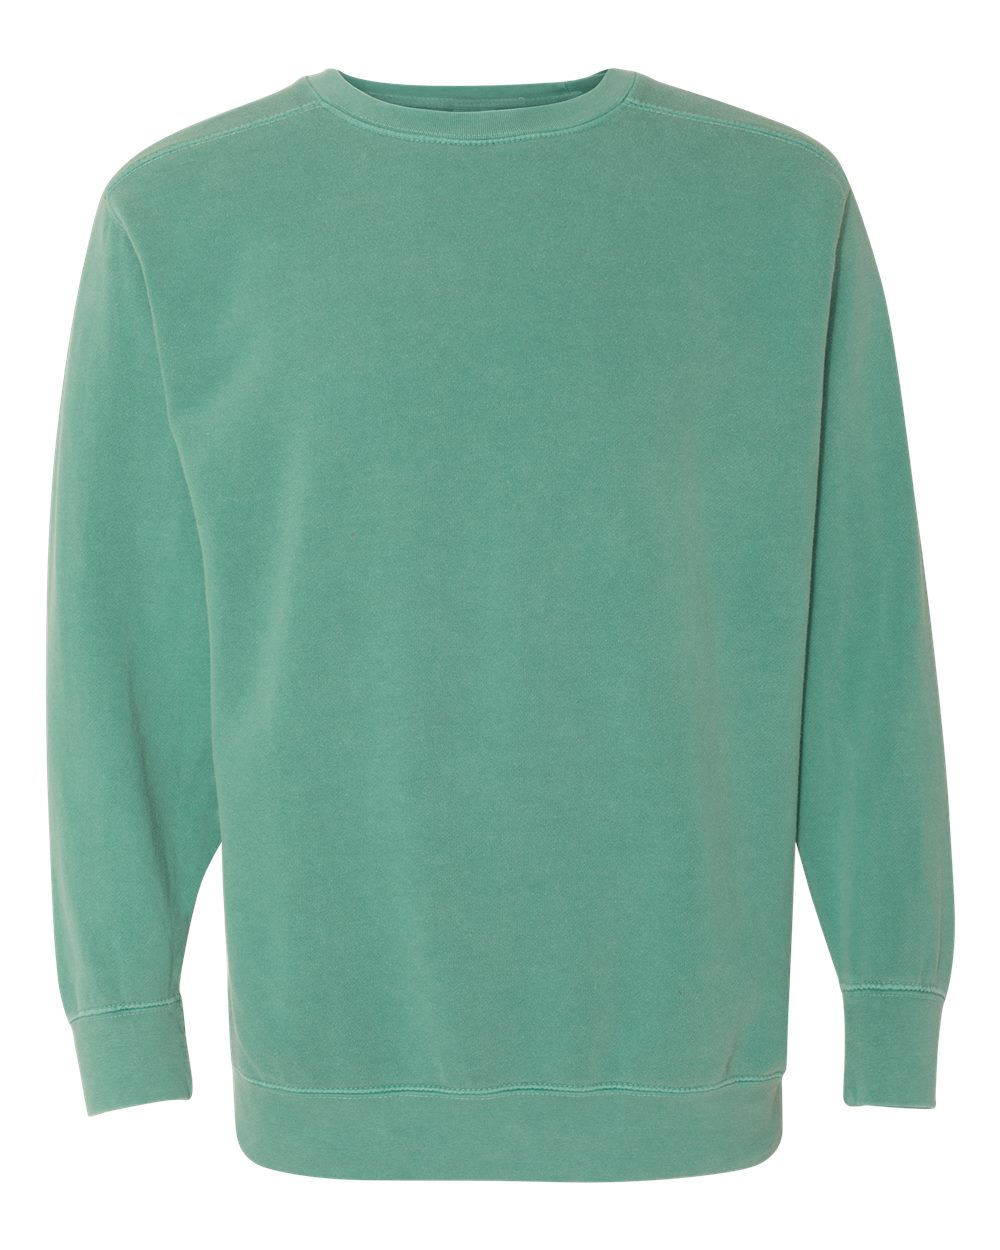 Comfort-Colors-Mens-Garment-Dyed-Ringspun-Crewneck-Sweatshirt-1566-up-to-3XL miniature 51